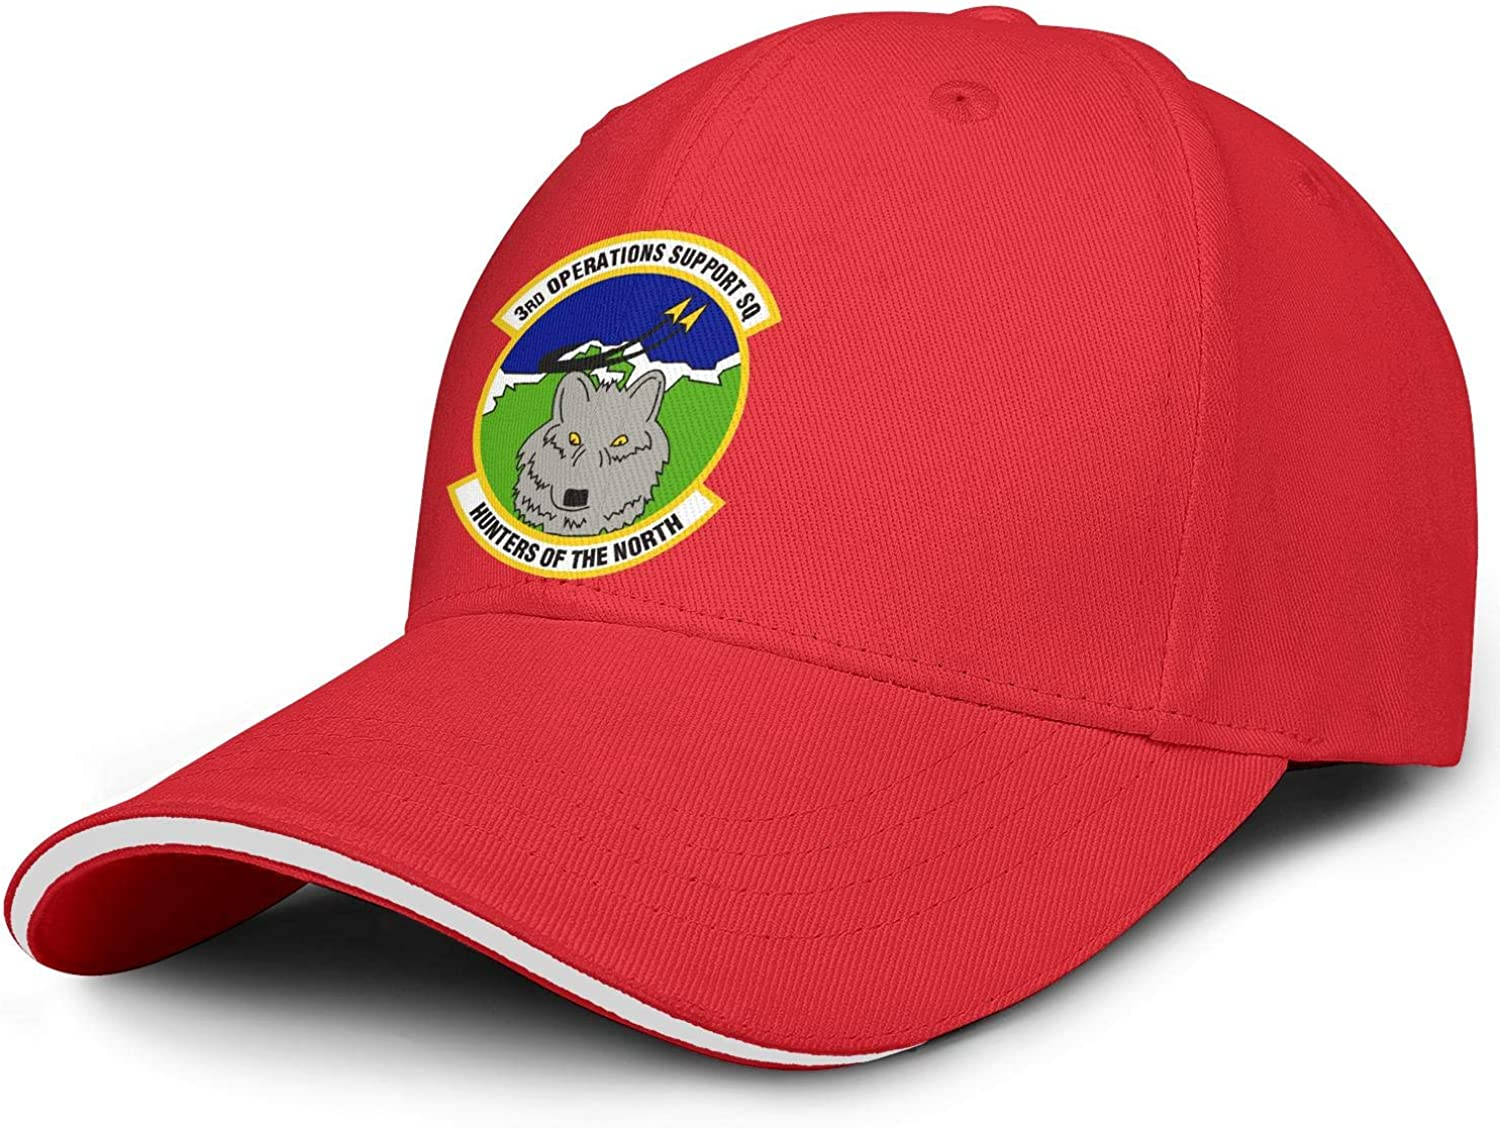 SWNCNC Unisex 3D-Operations-Support-Squadron- Caps Fitted trust Seasonal Wrap Introduction Hats